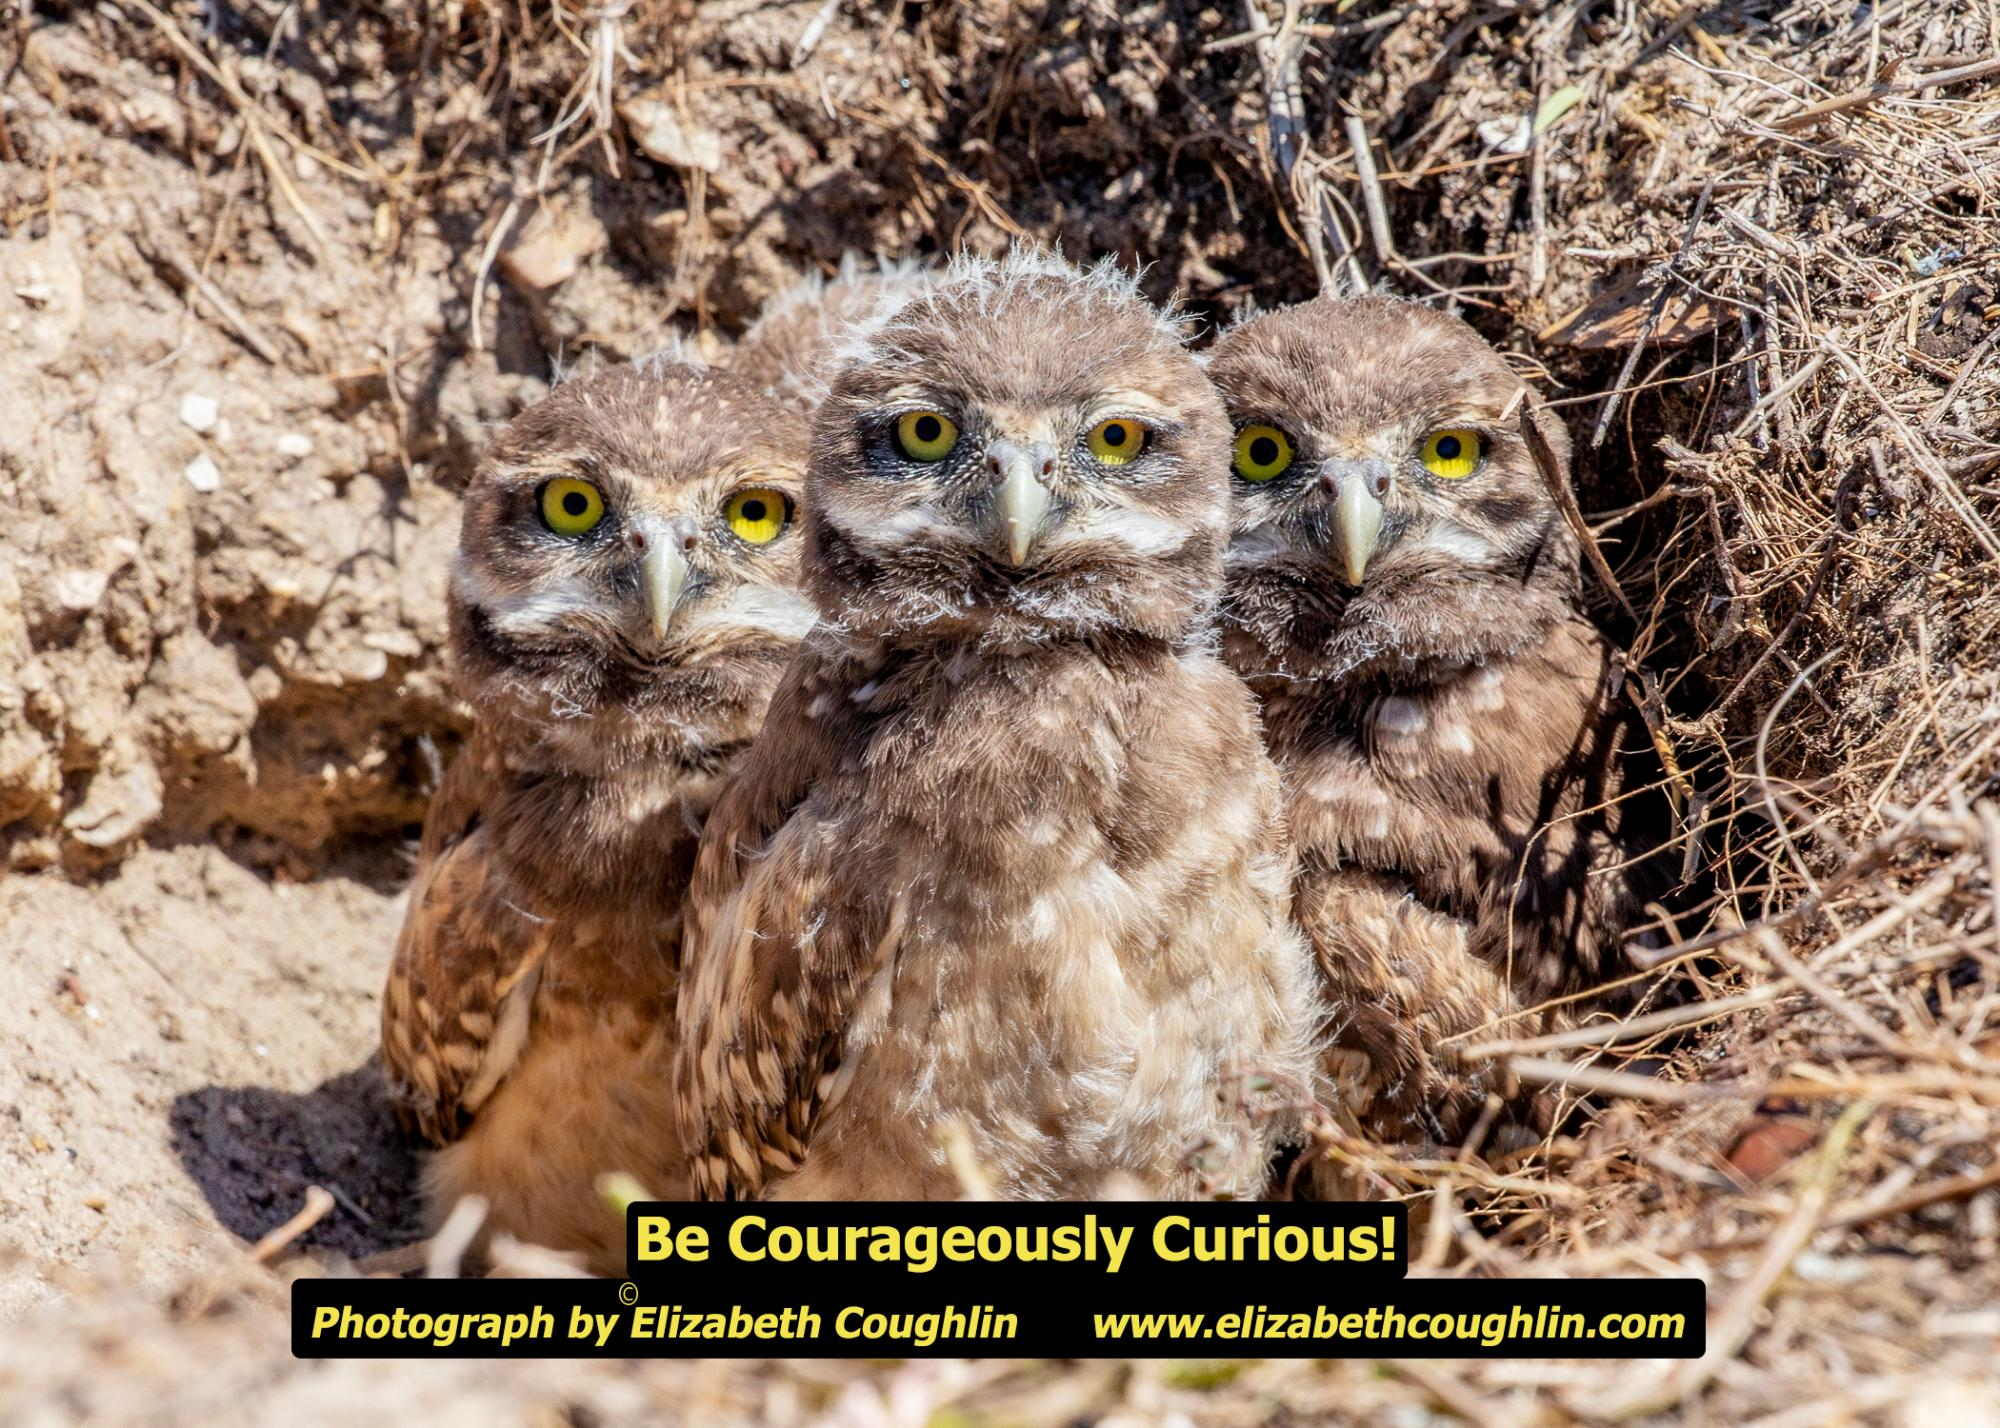 OWL_Burrowing_CourageouslyCu19435.jpg